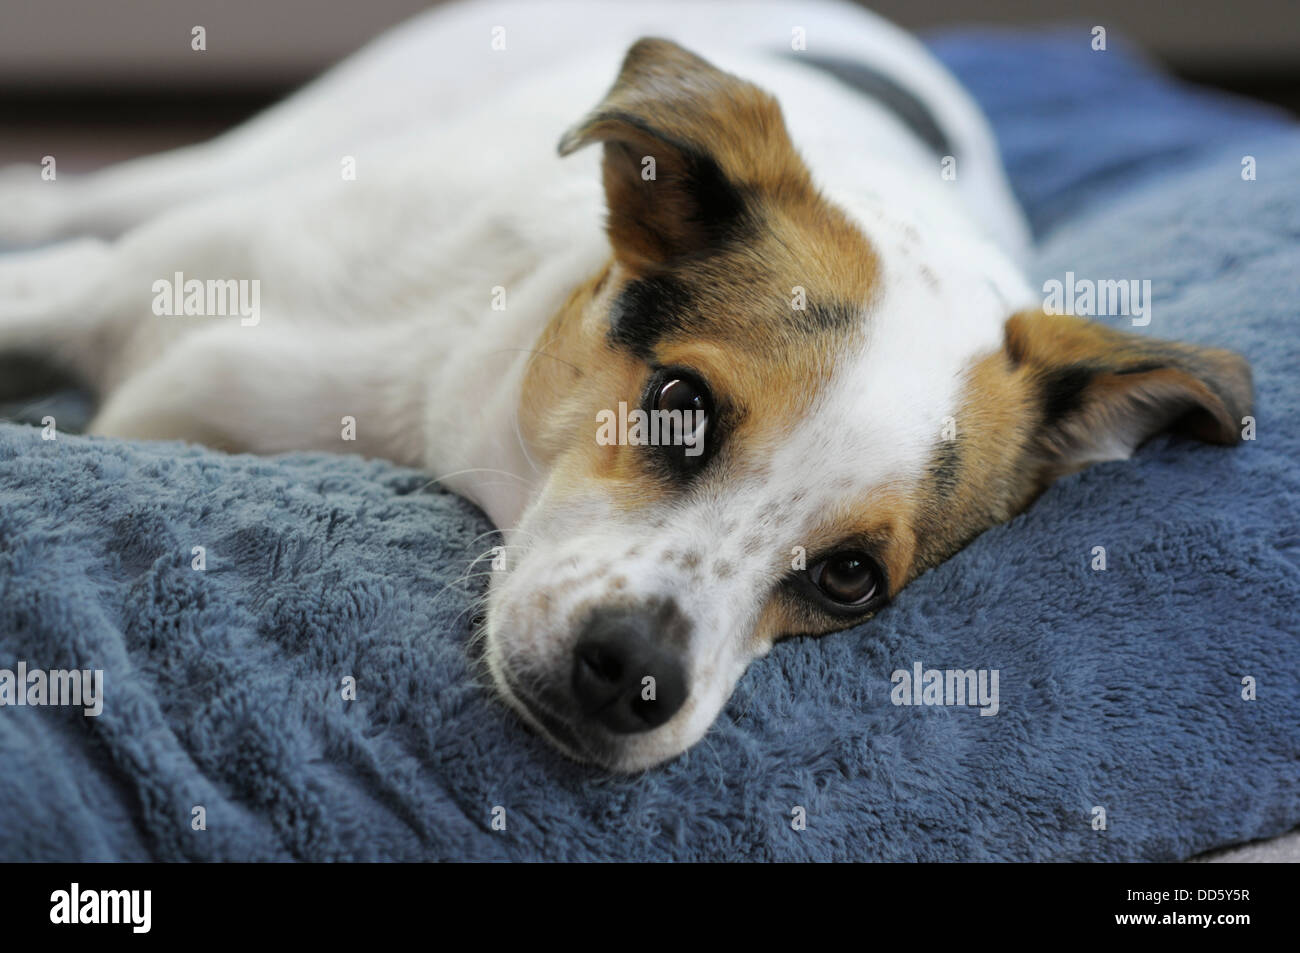 Cute mixed breed dog relaxing on his bed - Stock Image